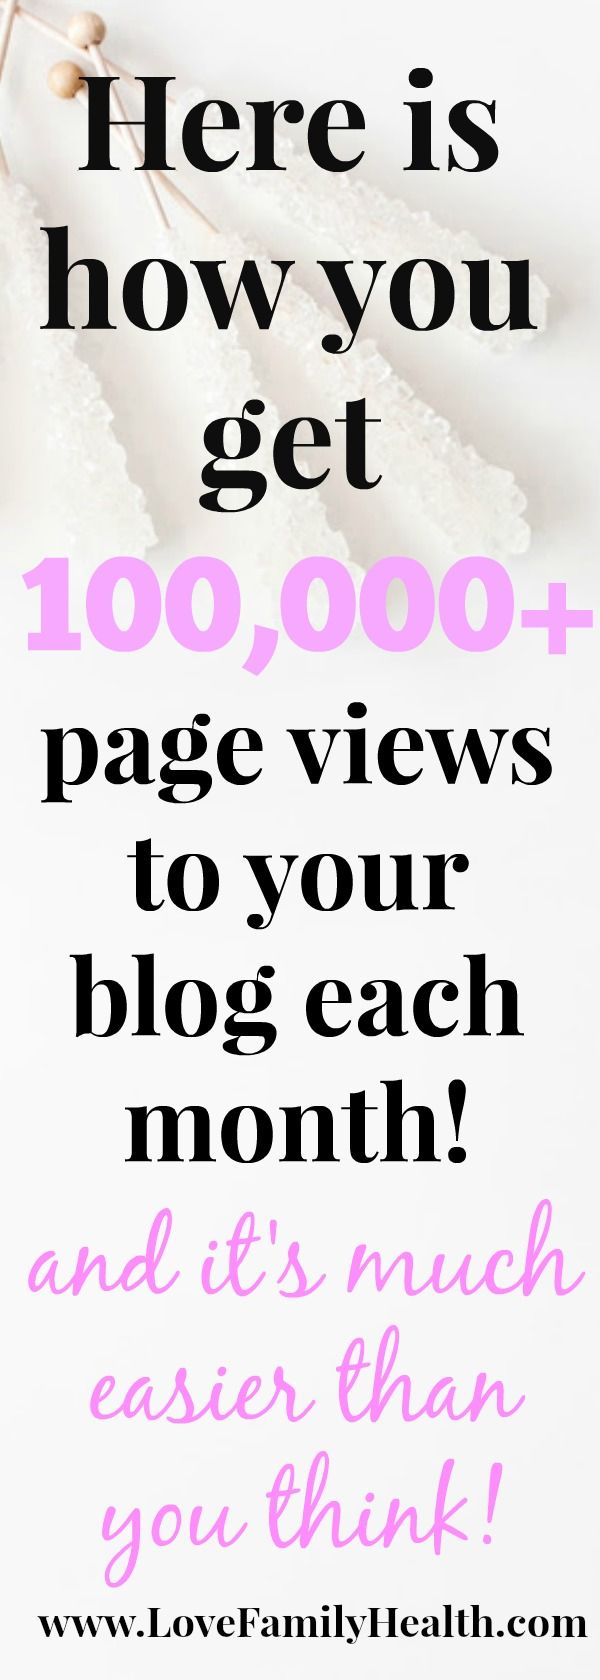 Time to increase your blogs traffic! And it's much easier than you think! #blogging